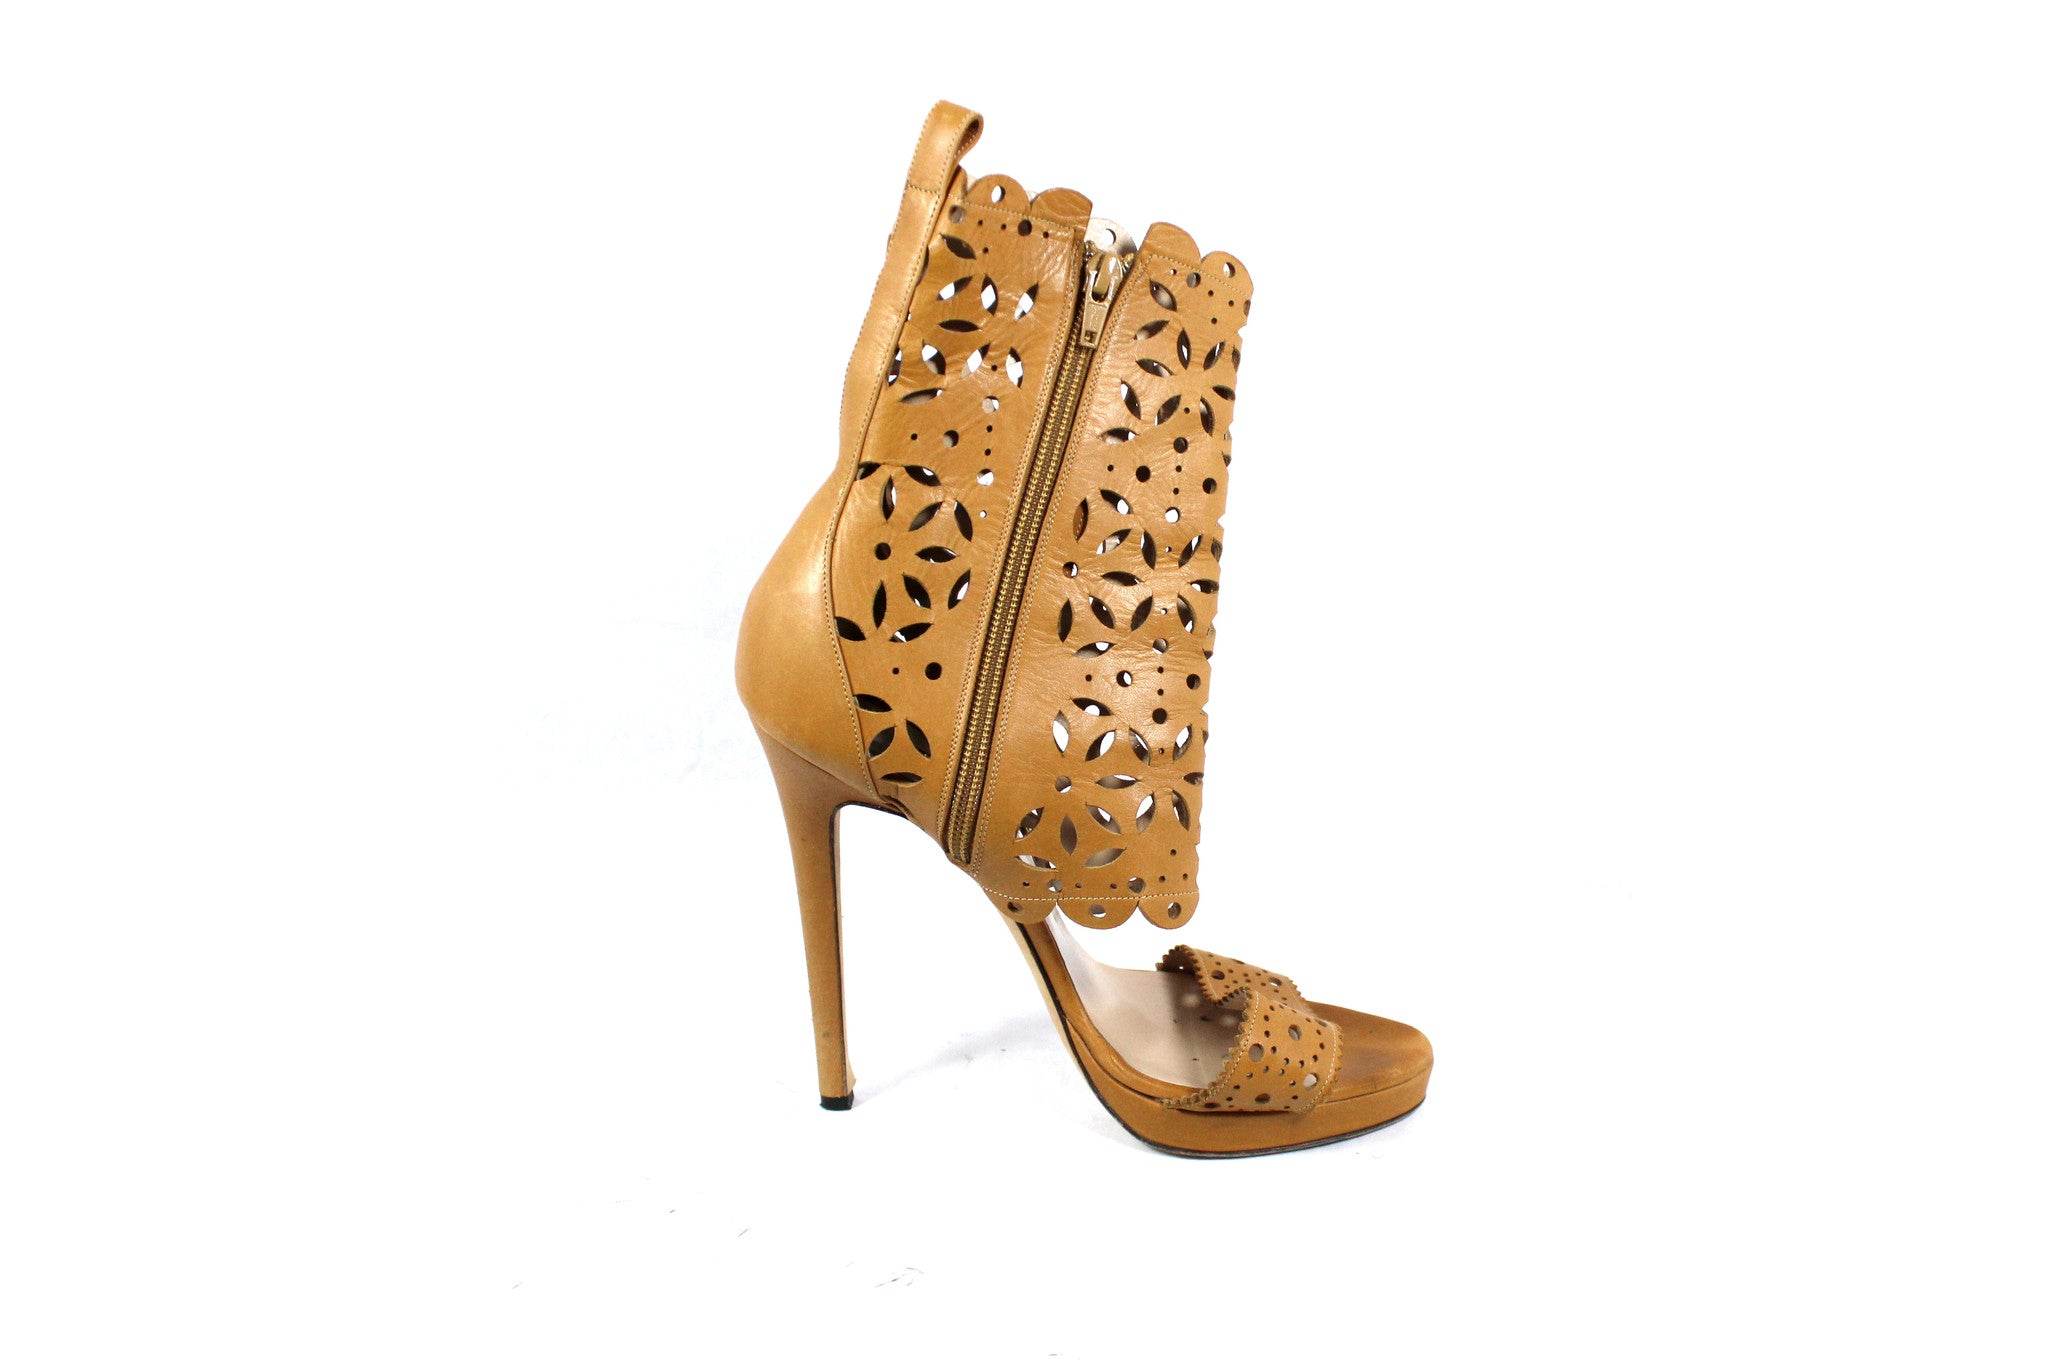 Oscar de la Renta Tan Leather Cut Out Sandals (Size 40) - Encore Consignment - 4